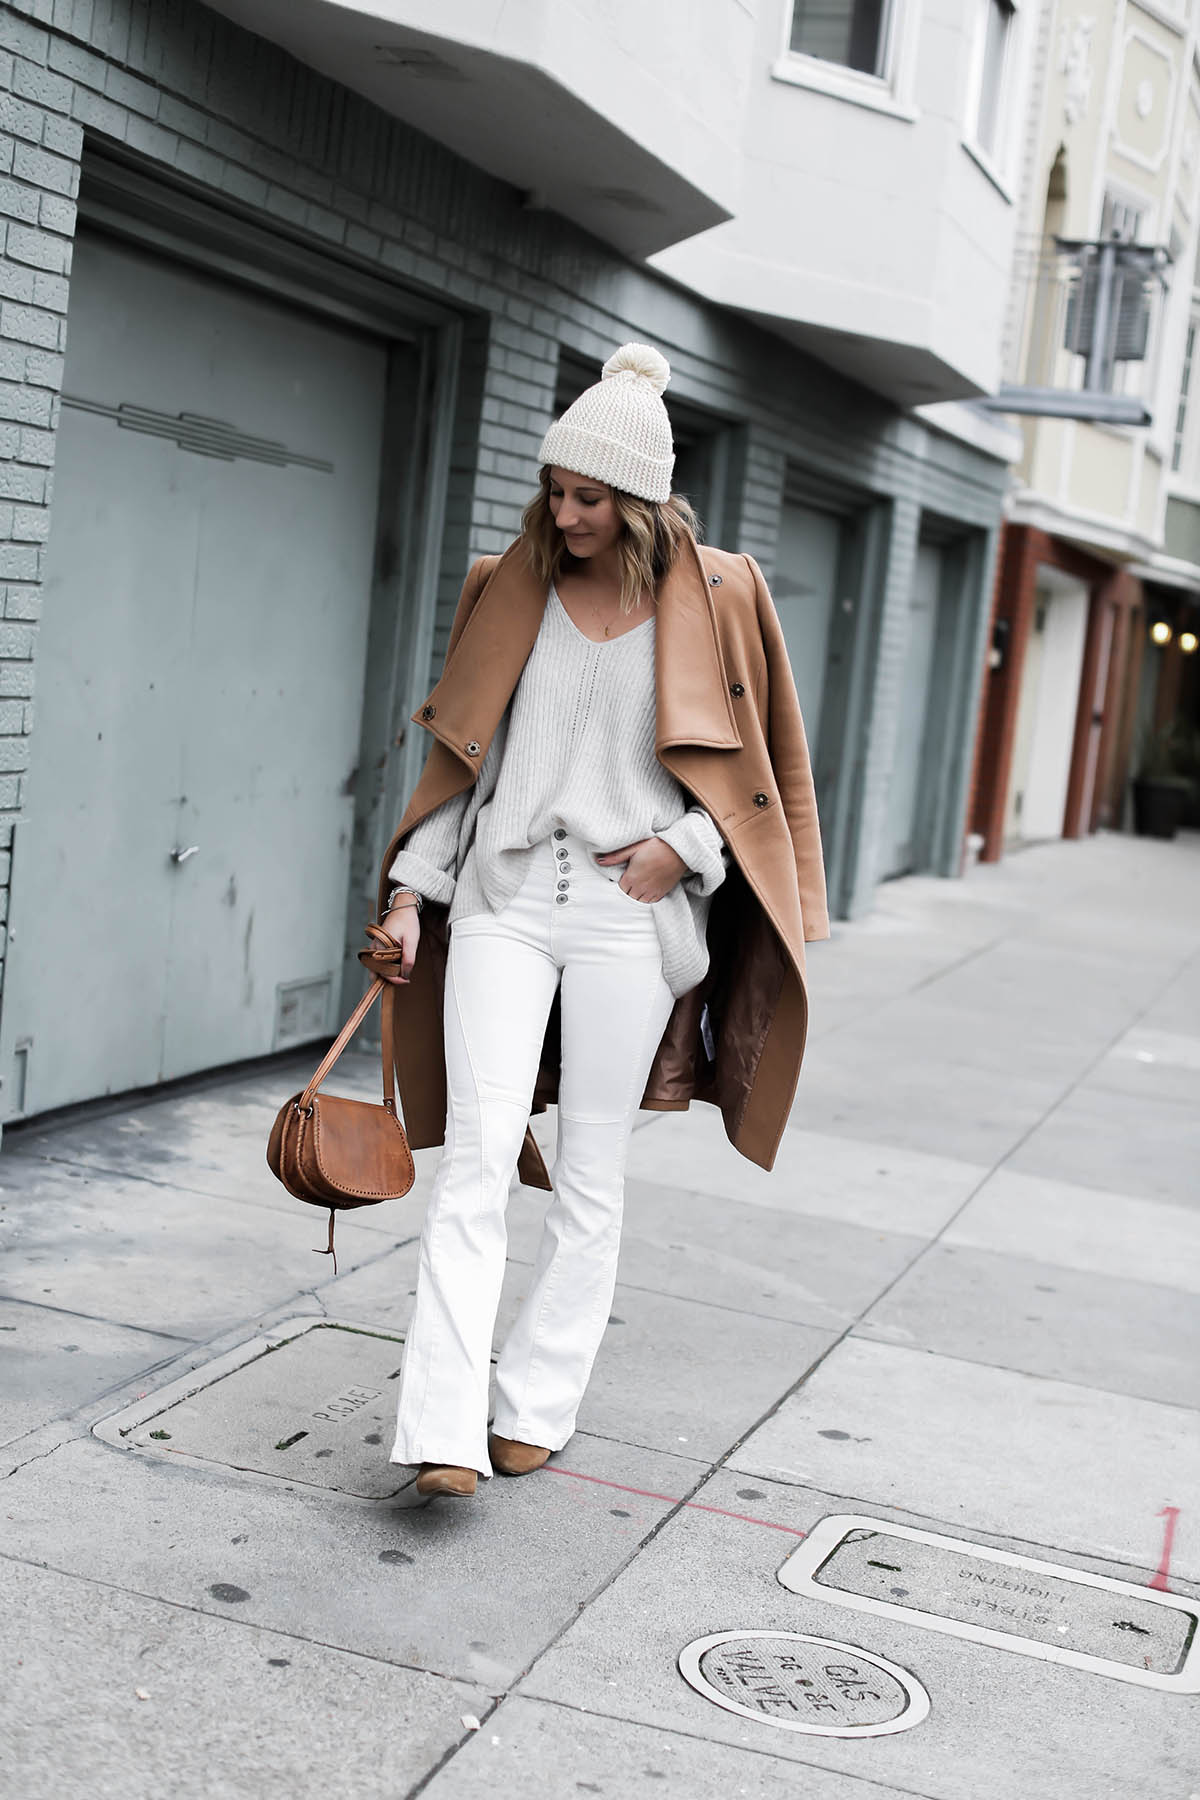 dca18389b5ccc How to wear white flare jeans for winter - AOL Lifestyle